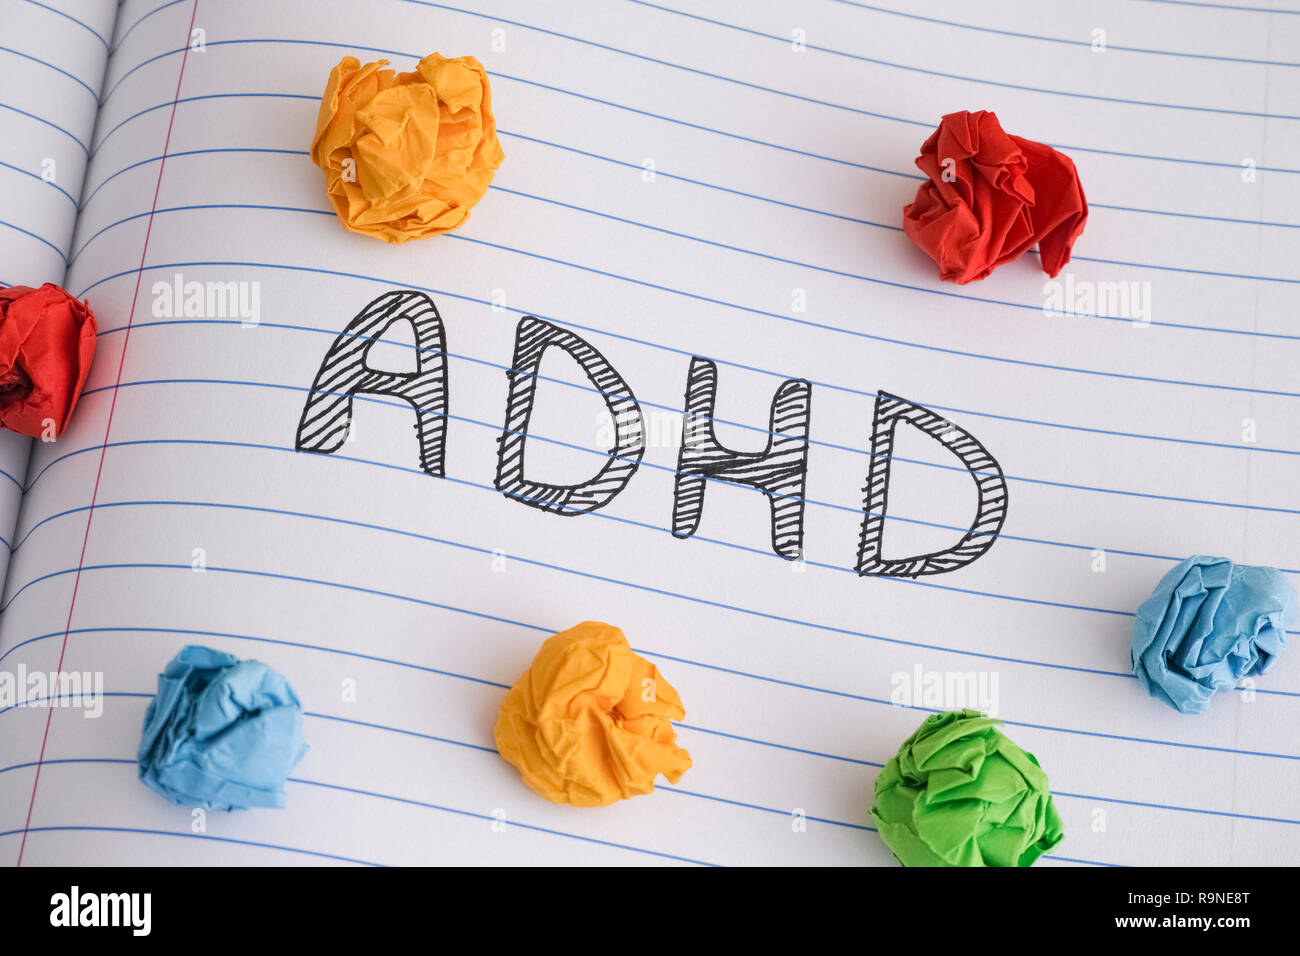 ADHD. Abbreviation ADHD on notebook sheet with some colorful crumpled paper balls on it. Close up. ADHD is Attention deficit hyperactivity disorder. - Stock Image